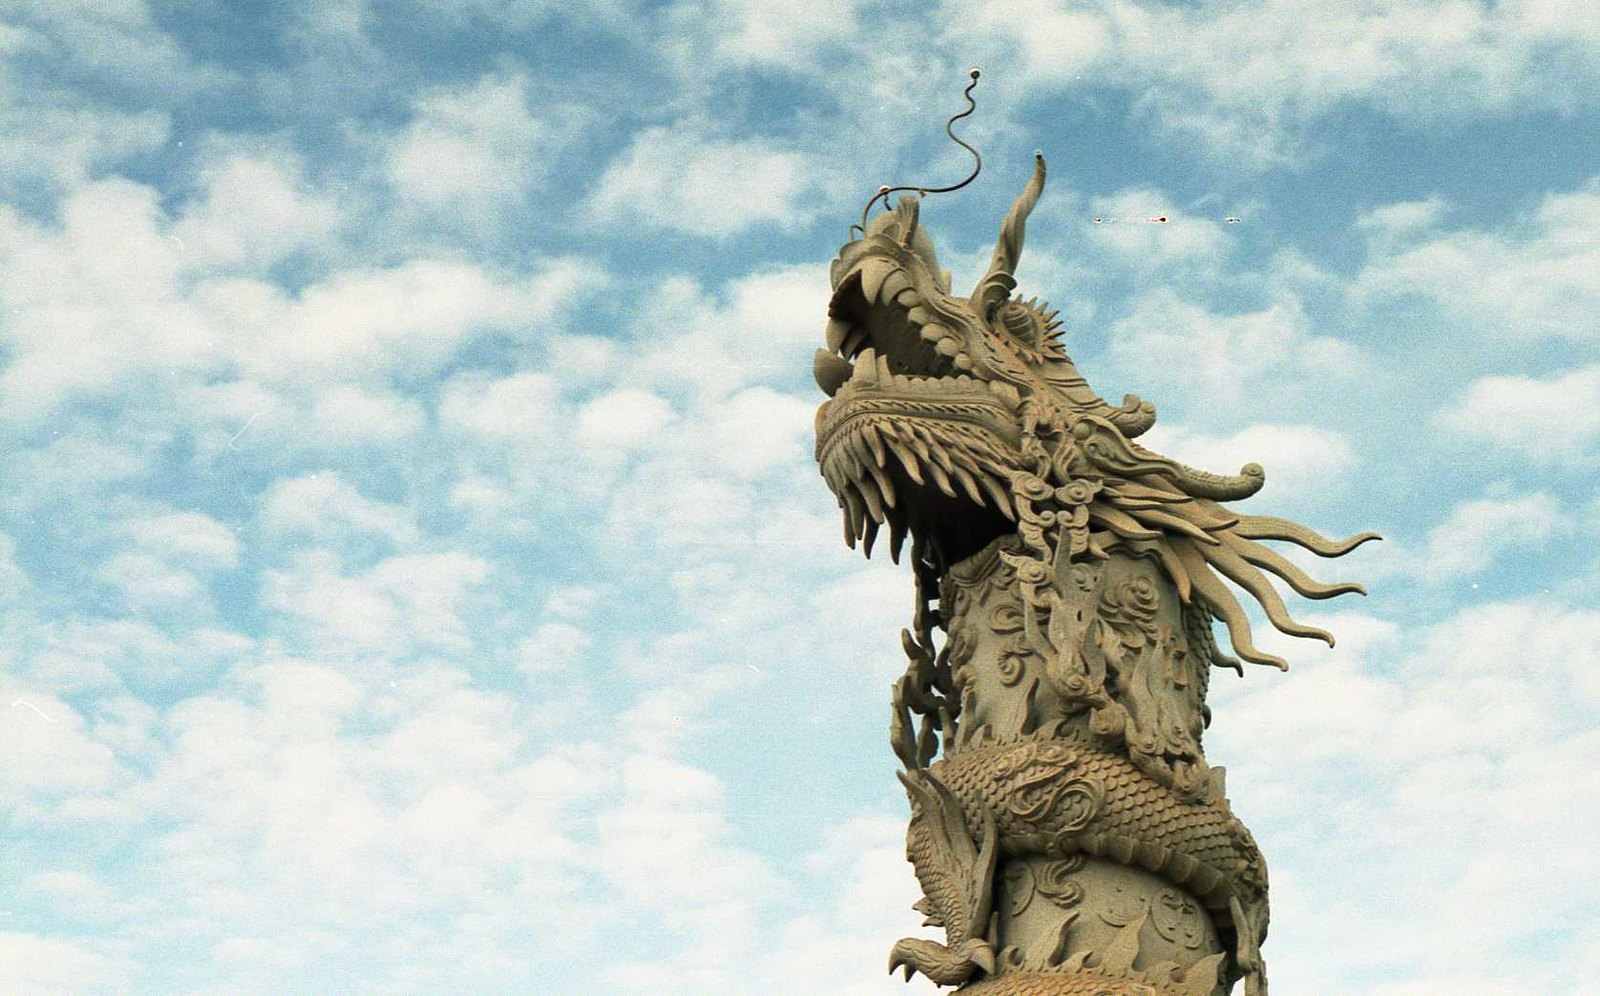 Image of a dragon statue in Tay Ninh, Vietnam